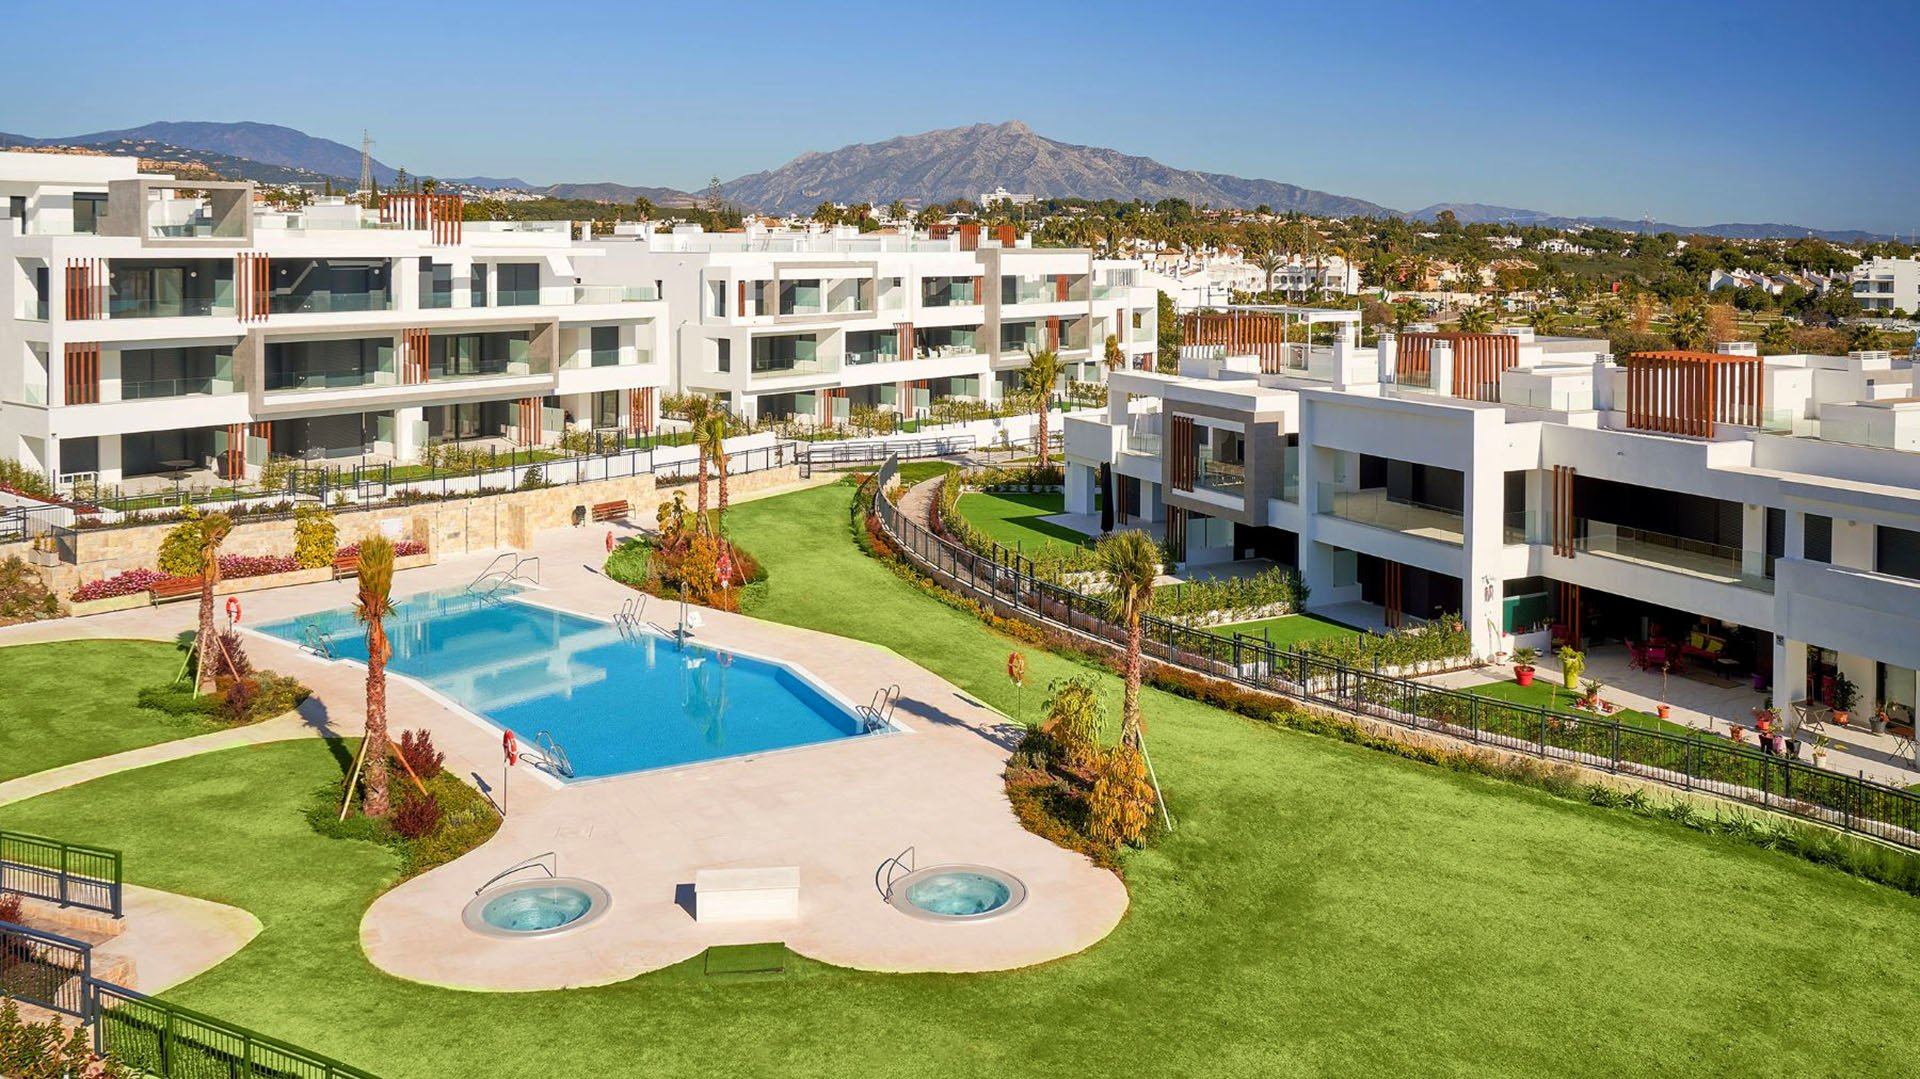 Los Miradores del Sol: Apartments on the New Golden Mile close to the beach